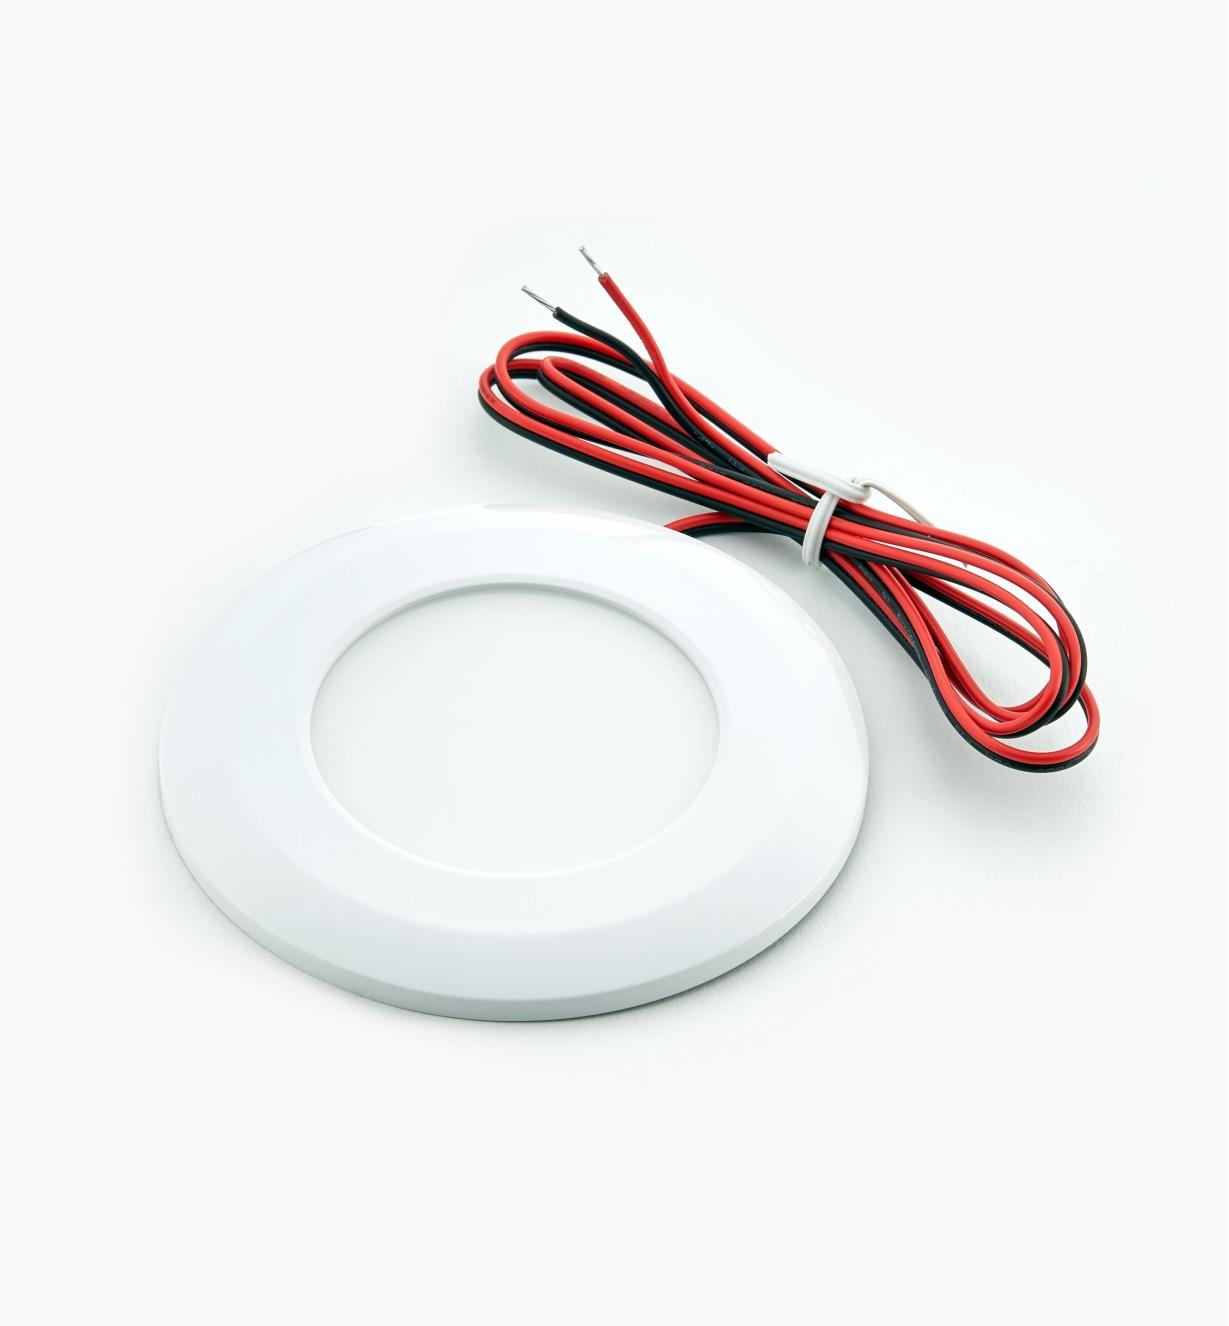 00U4421W - Warm White Wafer Light, White Finish